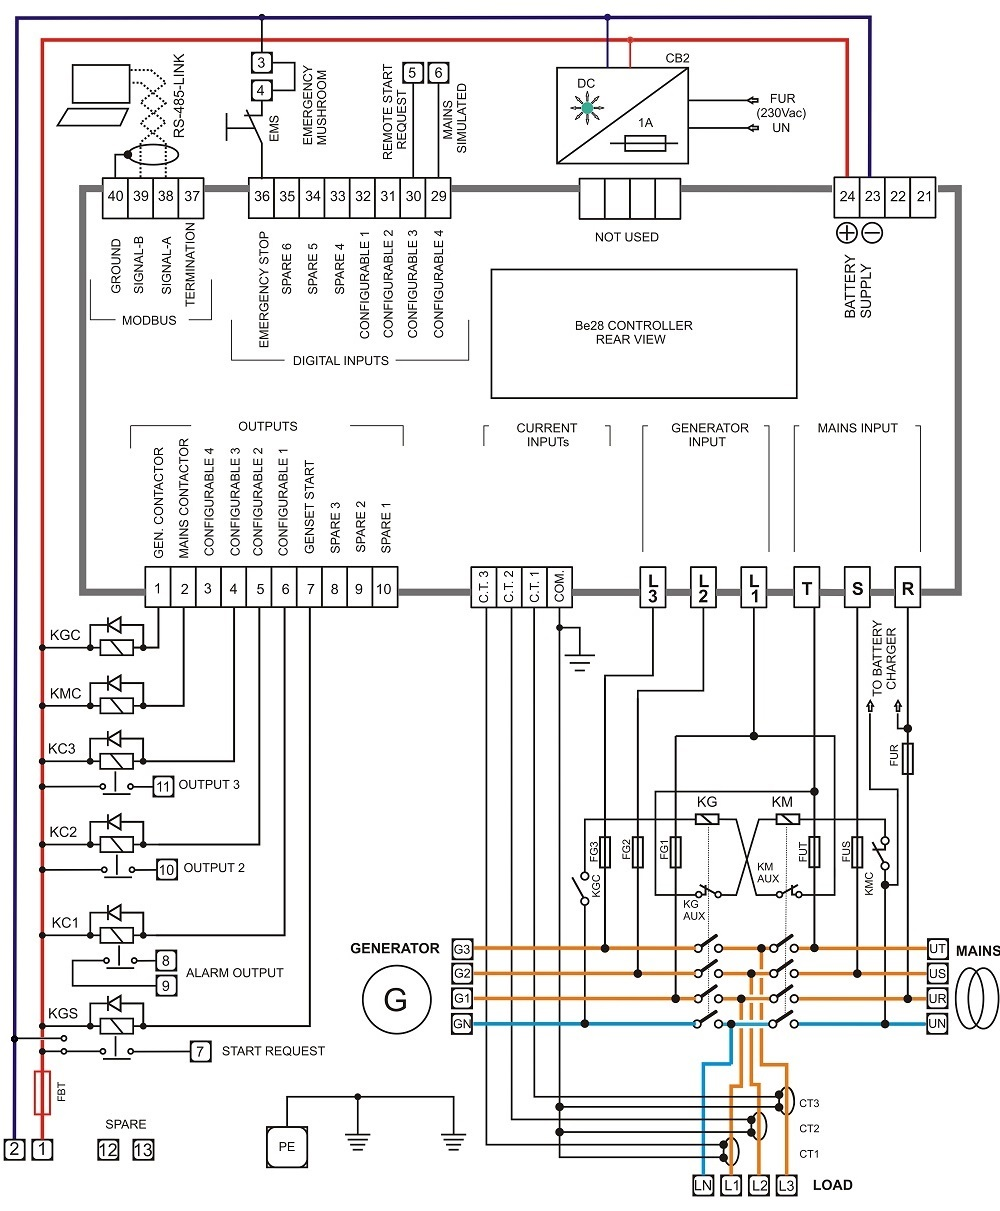 Artic Cat Atv Wiring Auto Electrical Diagram Gmdlbp Caterpillar Sr4 Generator 40